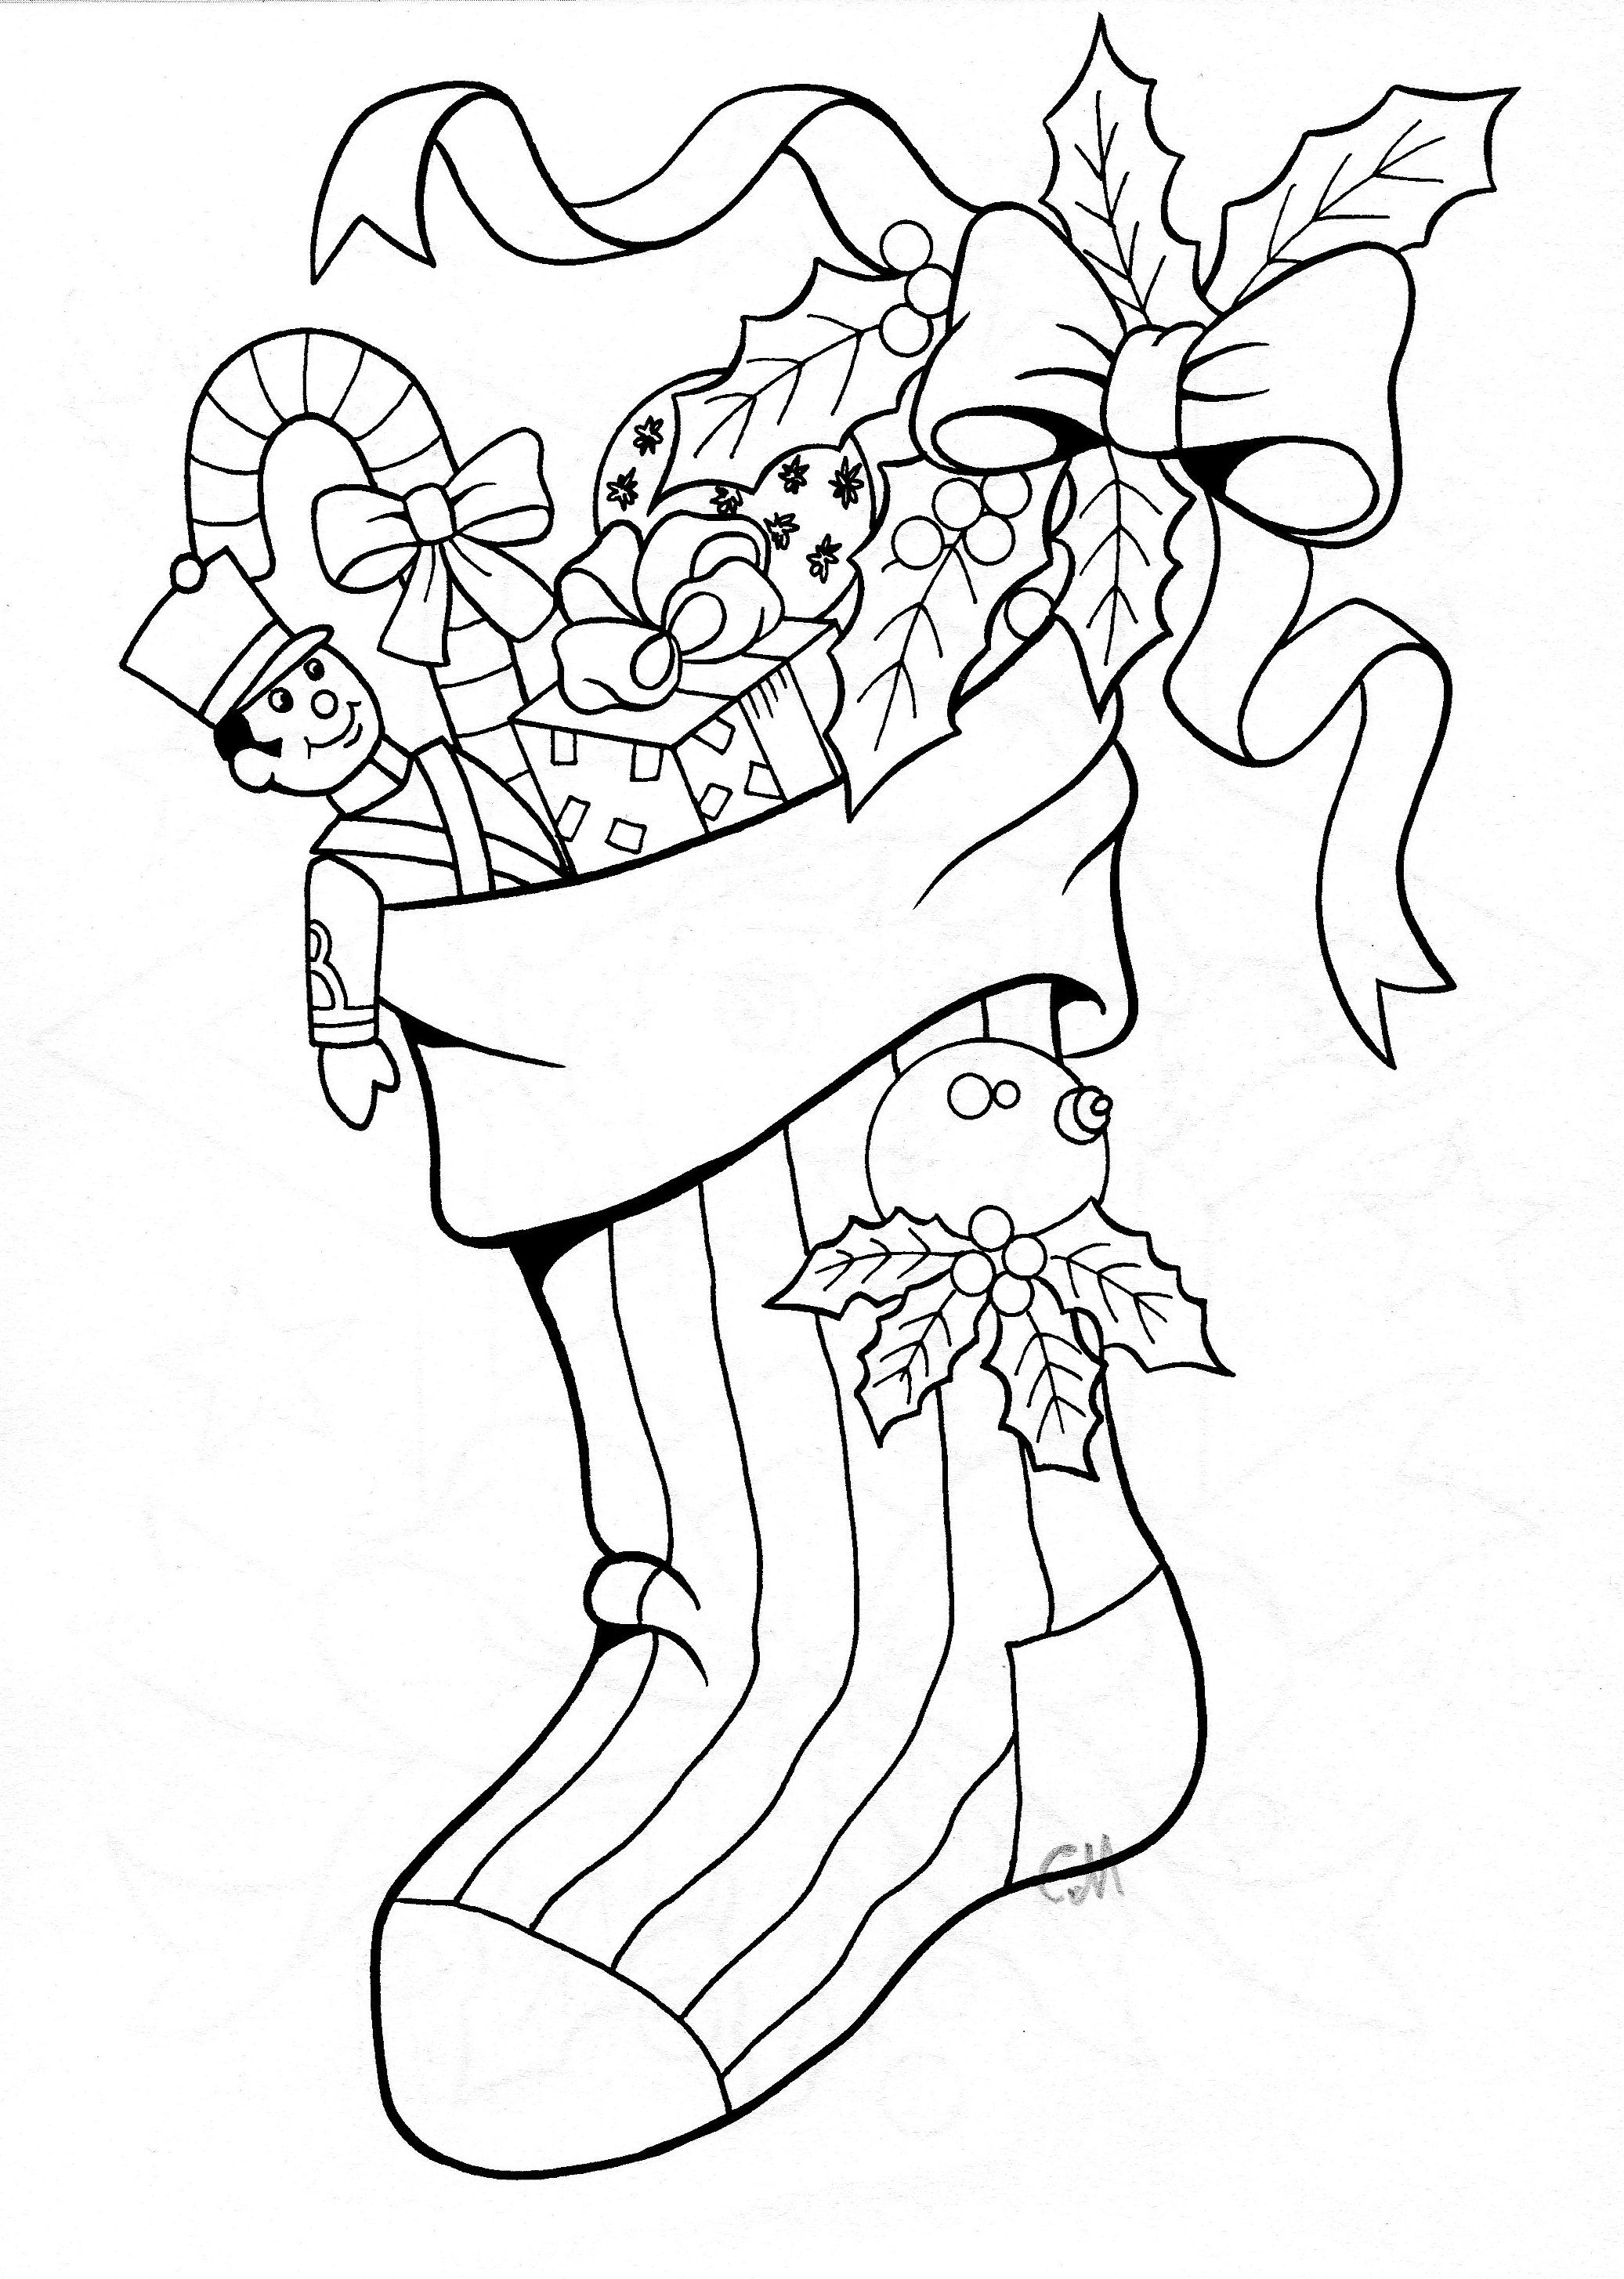 coloring pages christmas stockings - photo#40